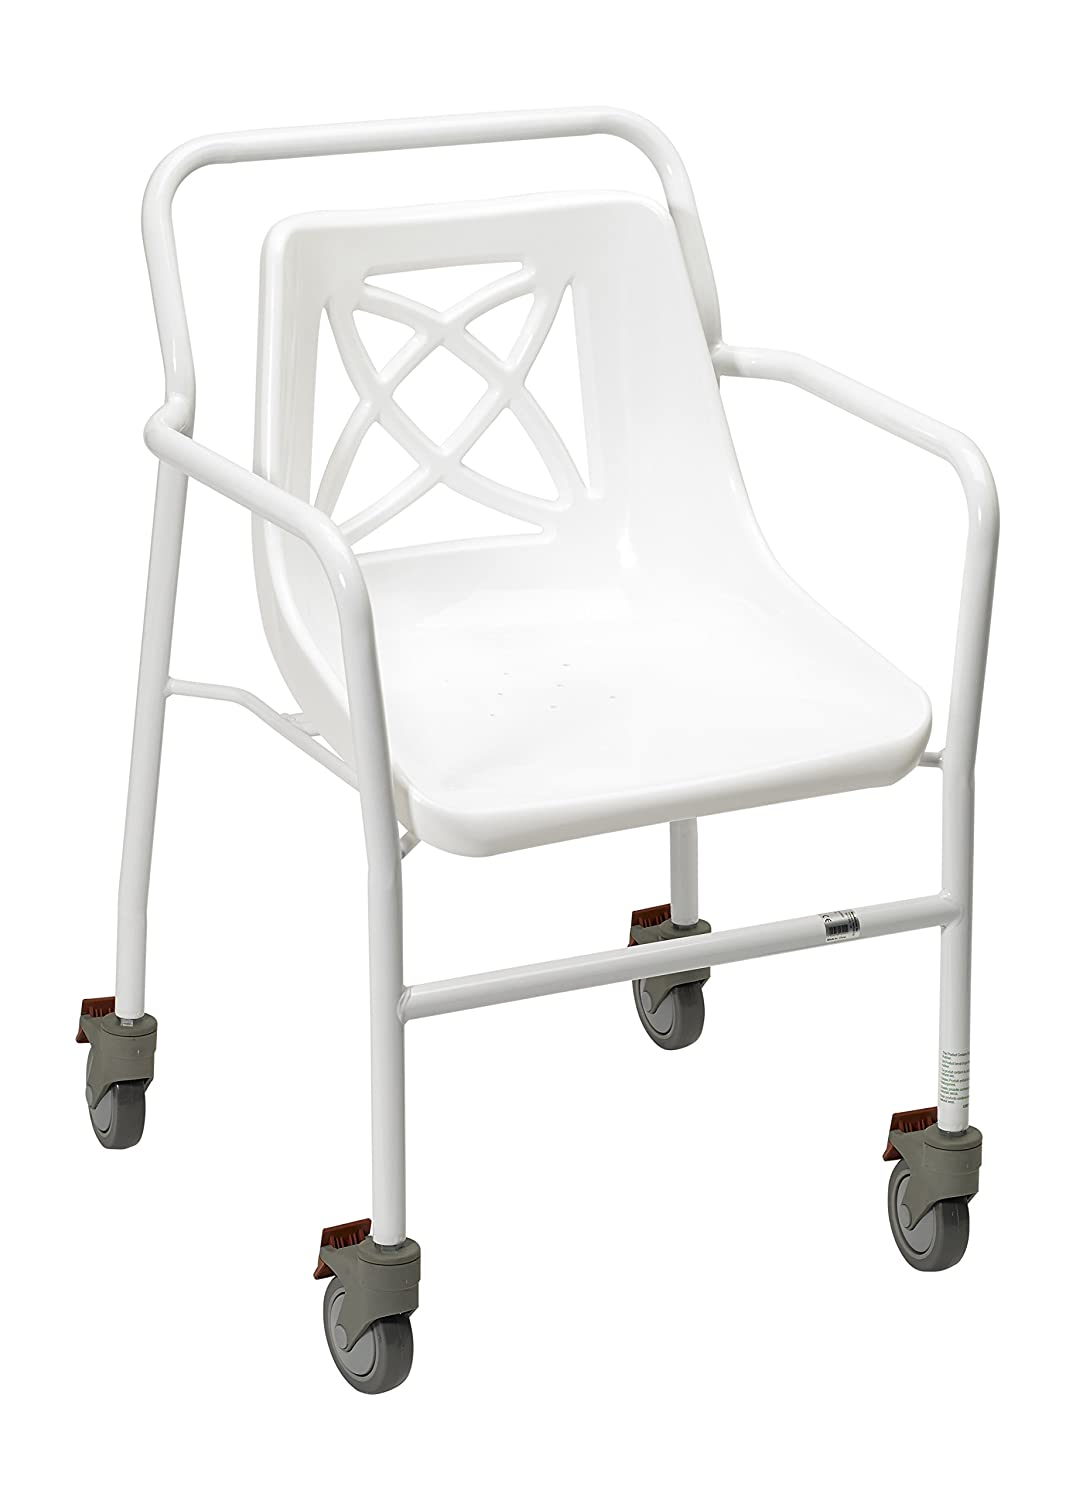 Homecraft Harrogate Fixed Height Shower Chair with Wheels (Eligible ...